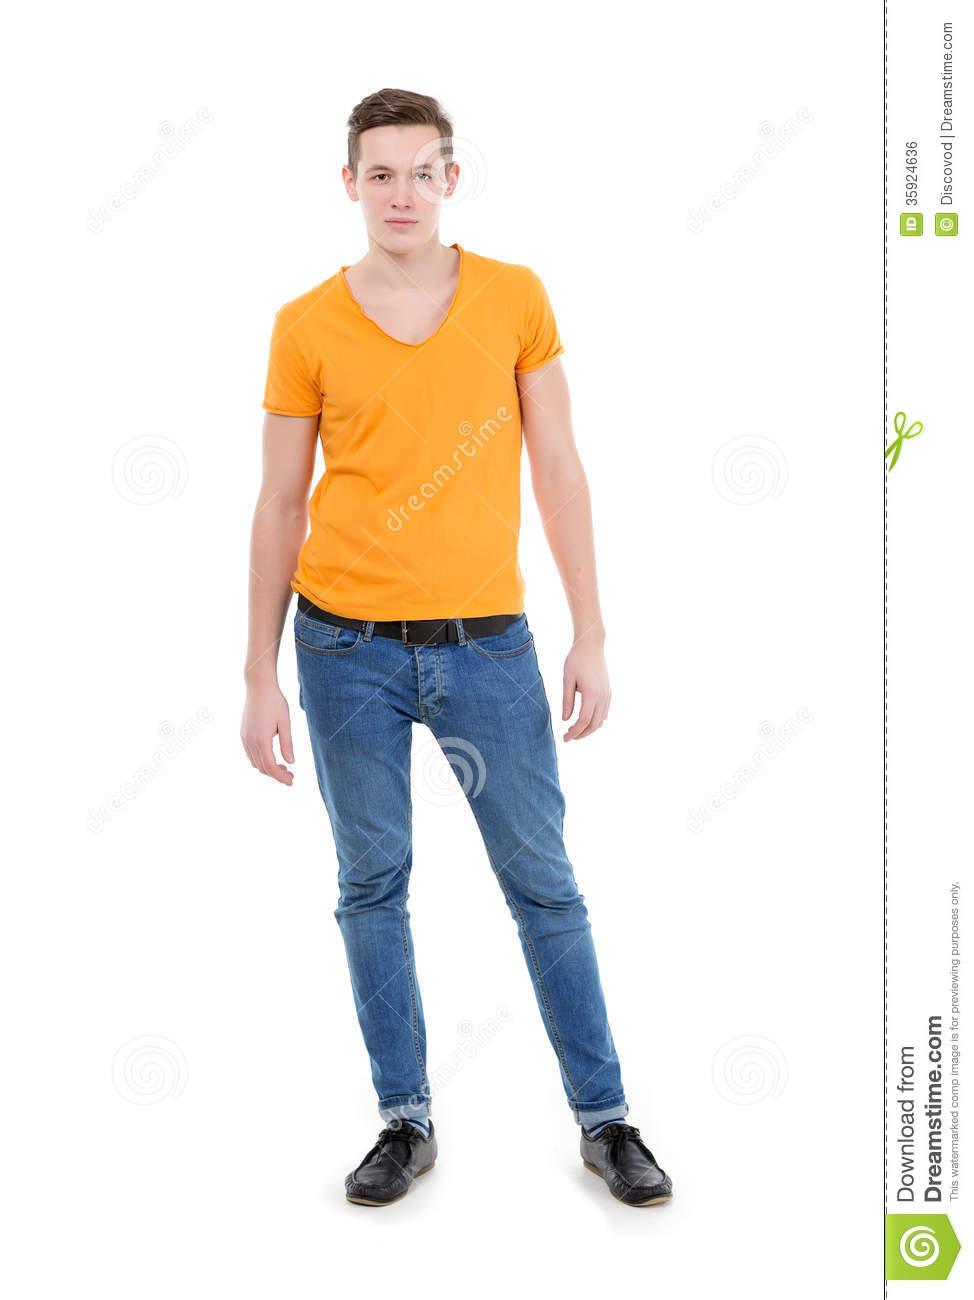 Young Man Wearing A Yellow T-shirt And Slim Jeans Royalty Free Stock Image - Image 35924636